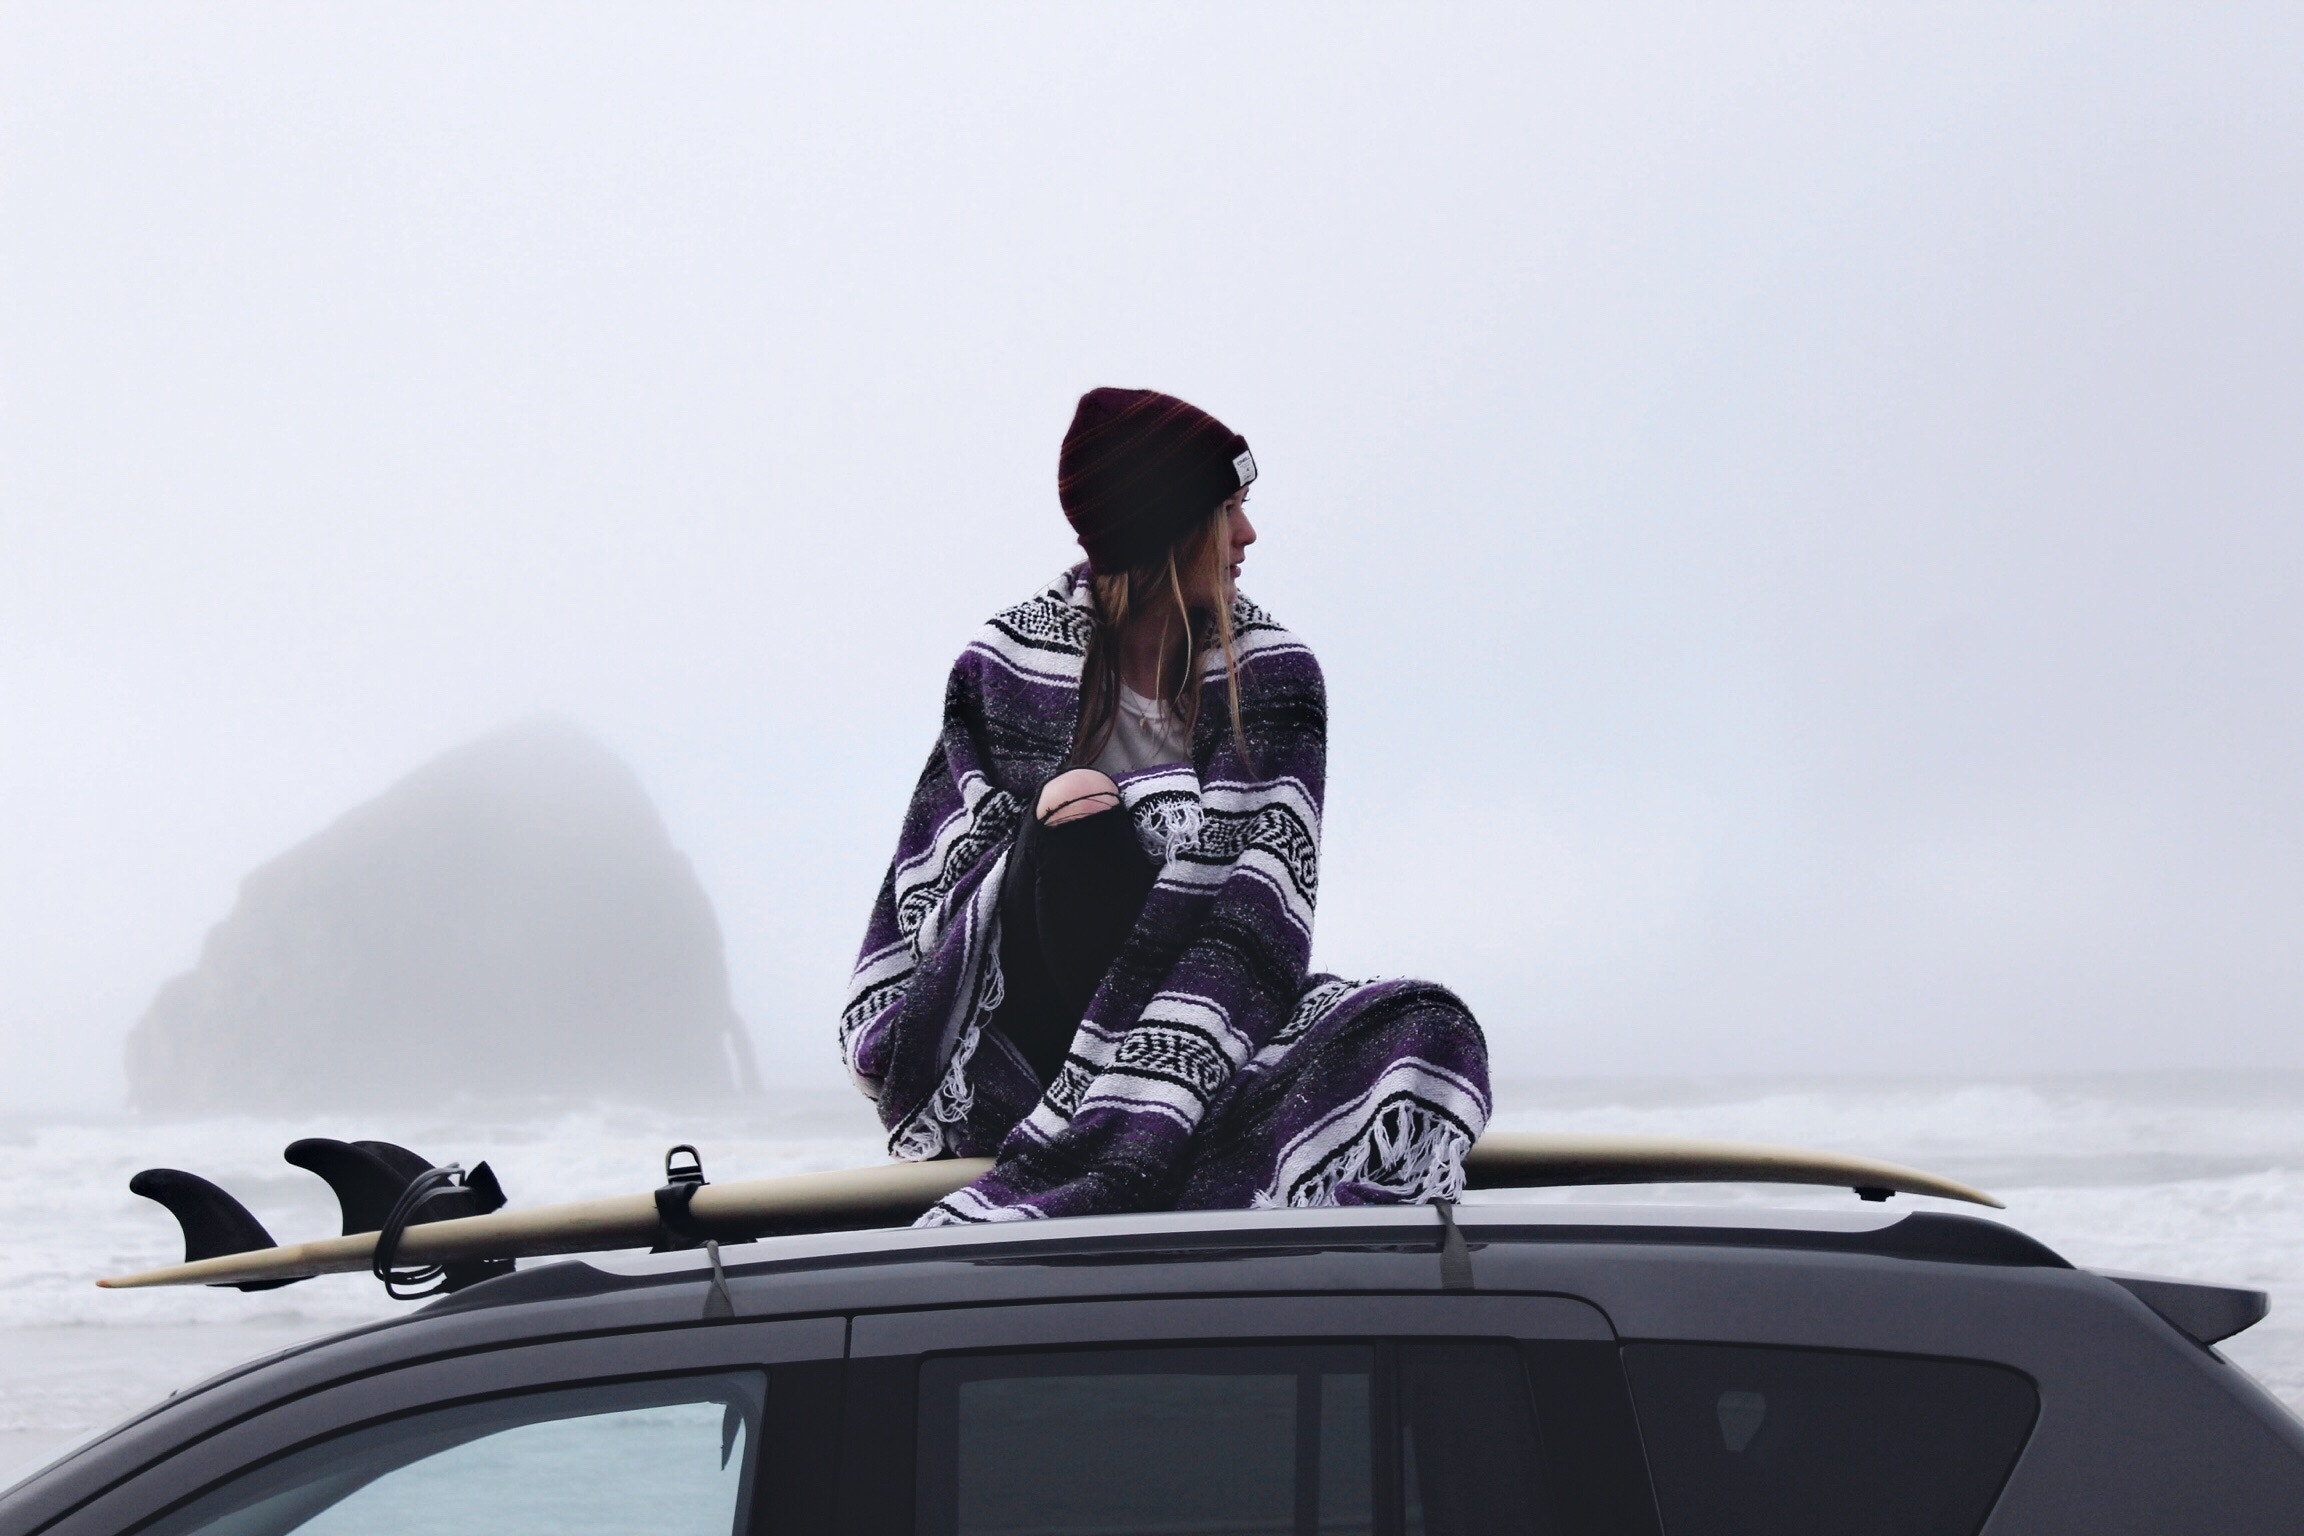 A Midwinter Car Camping Story of a 20-Something Hotel Fangirl